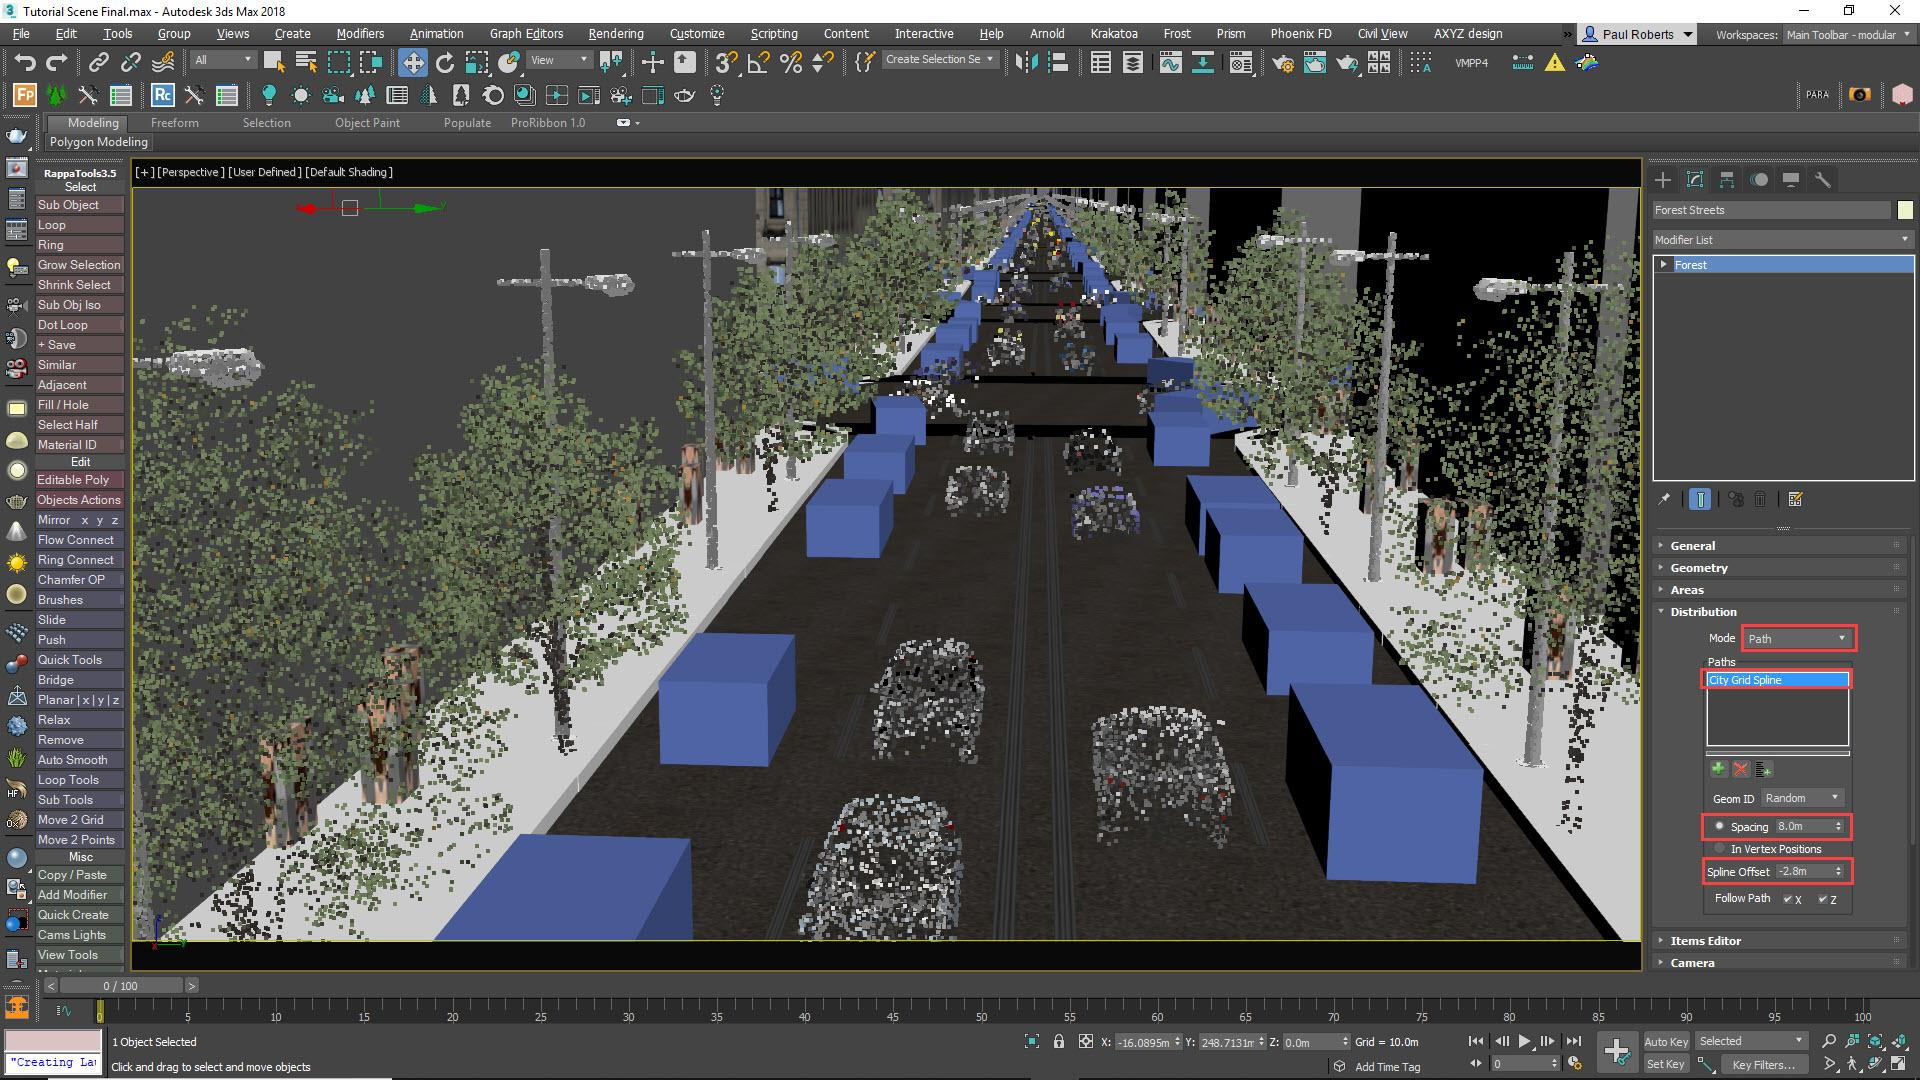 Step 25 -Adding Trees to the Streets